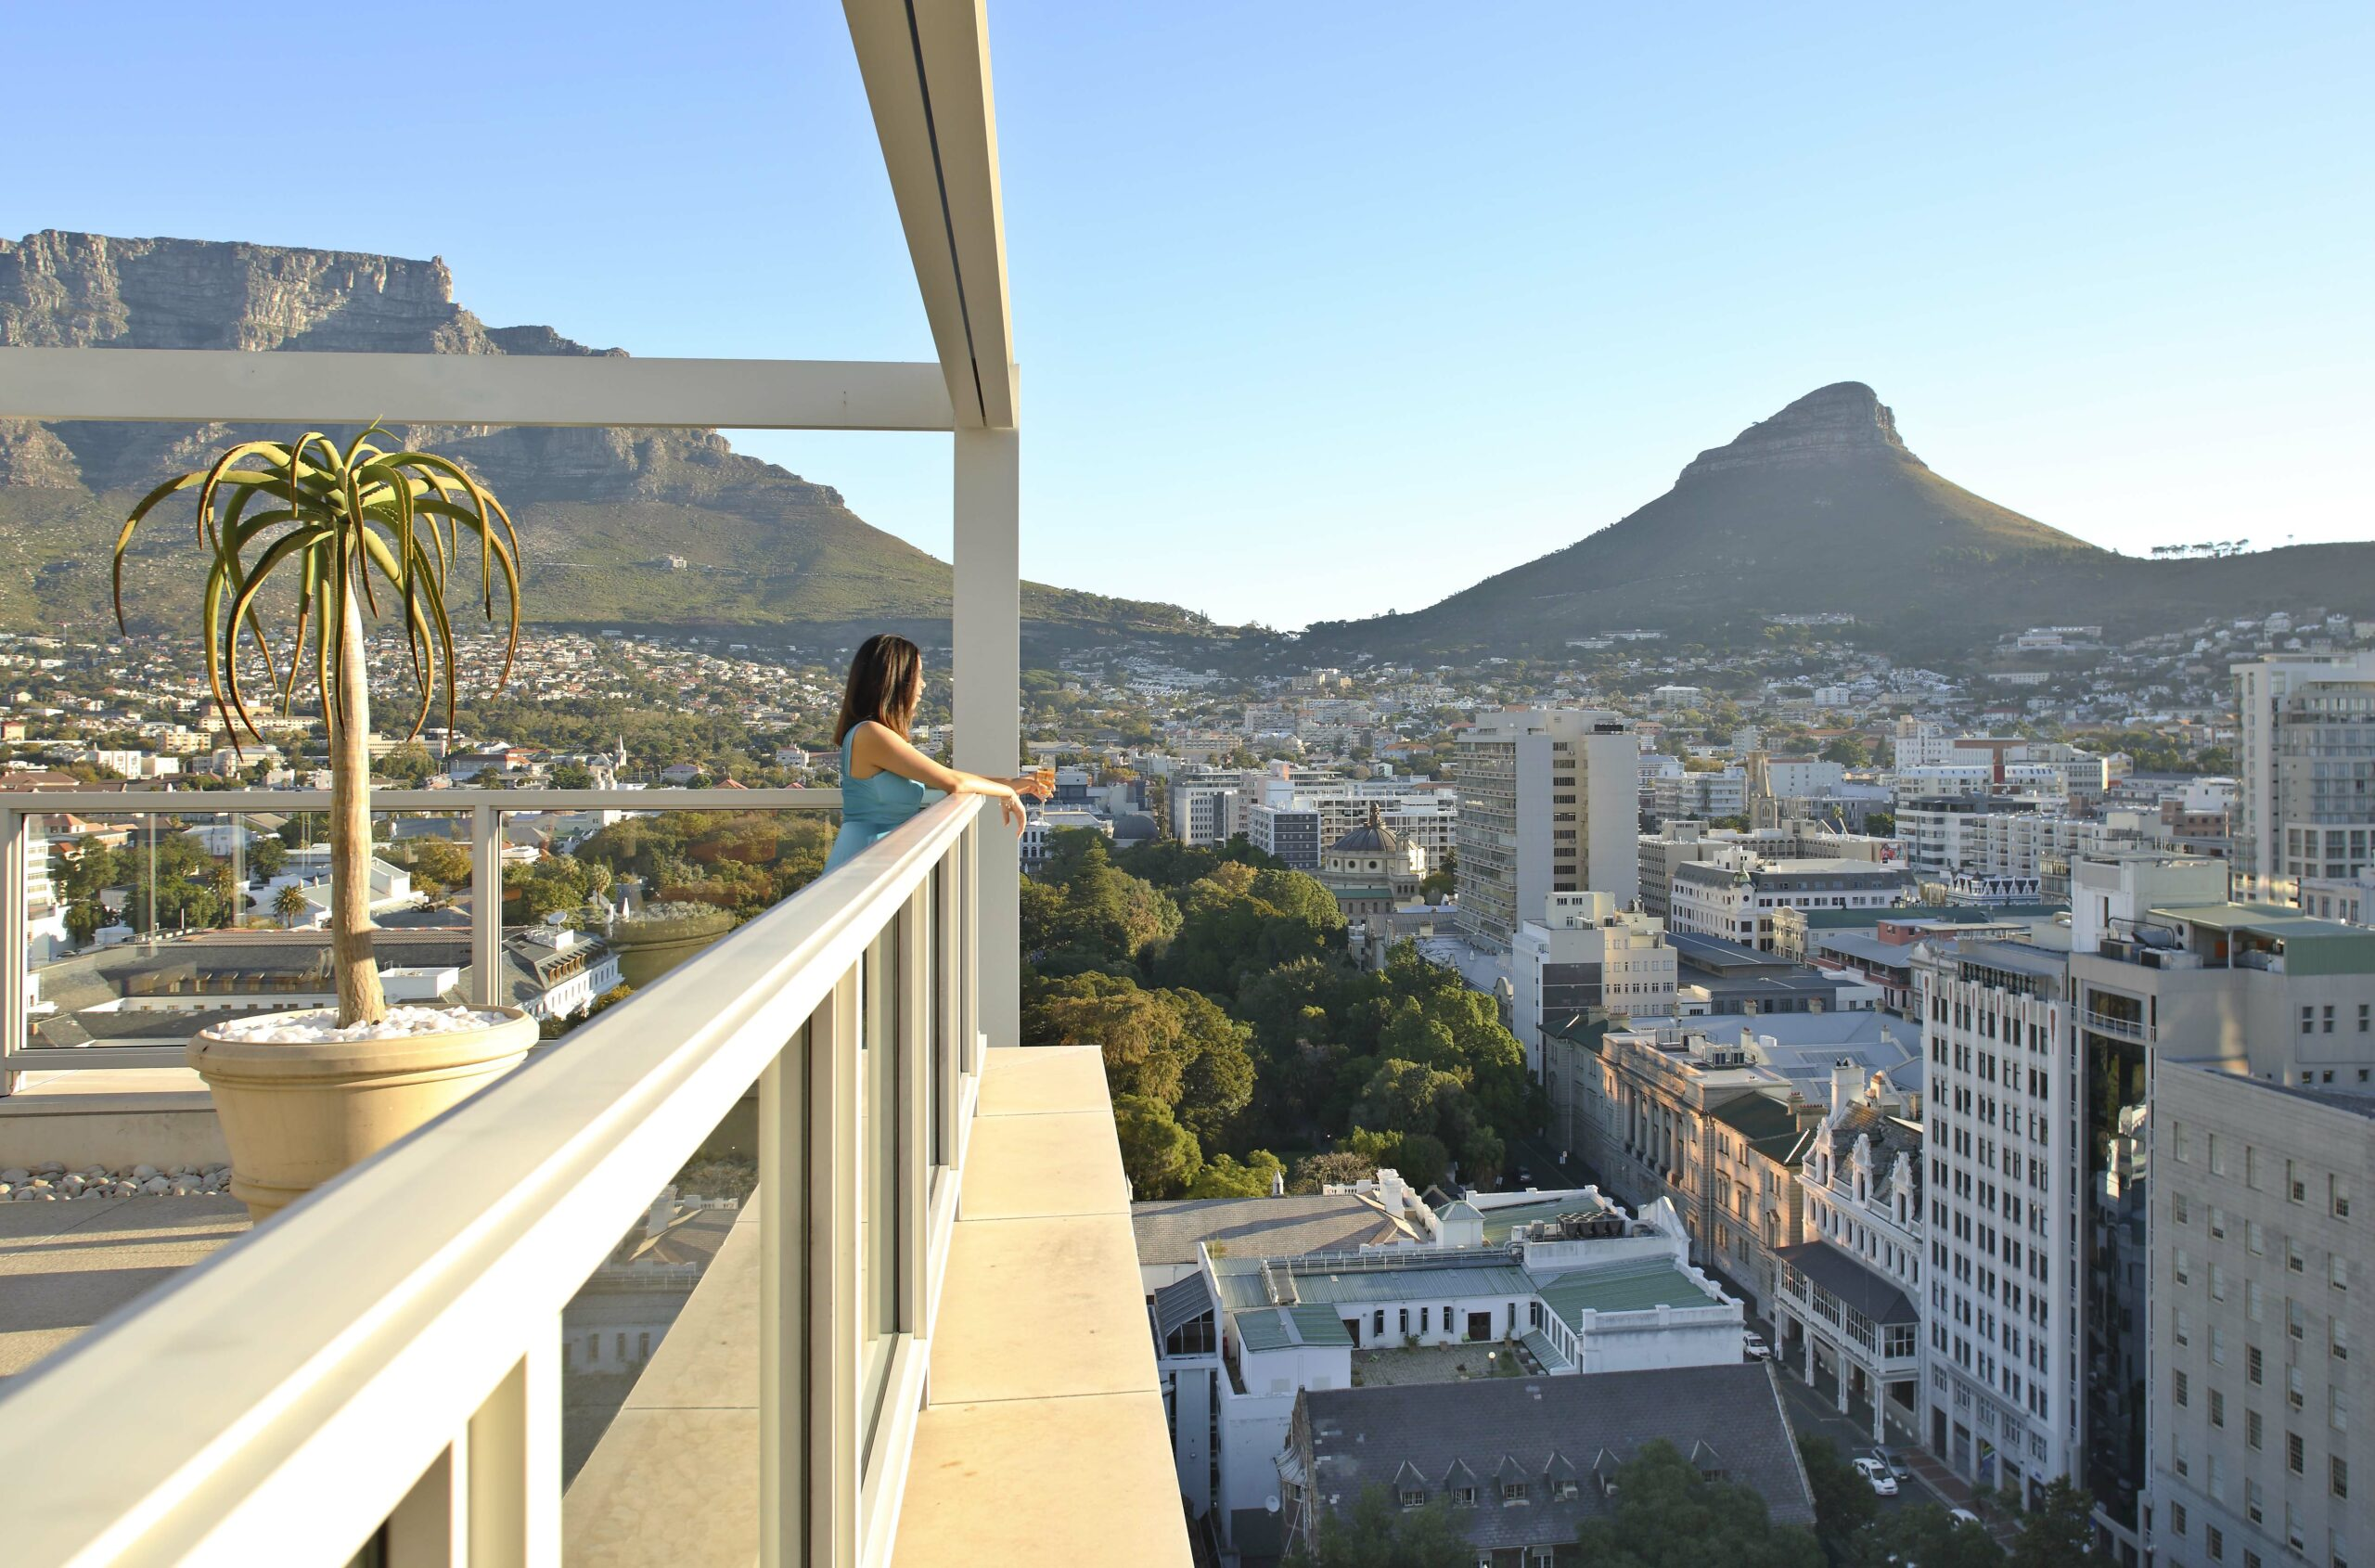 Rooftop overlooking lionshead in Cape Town